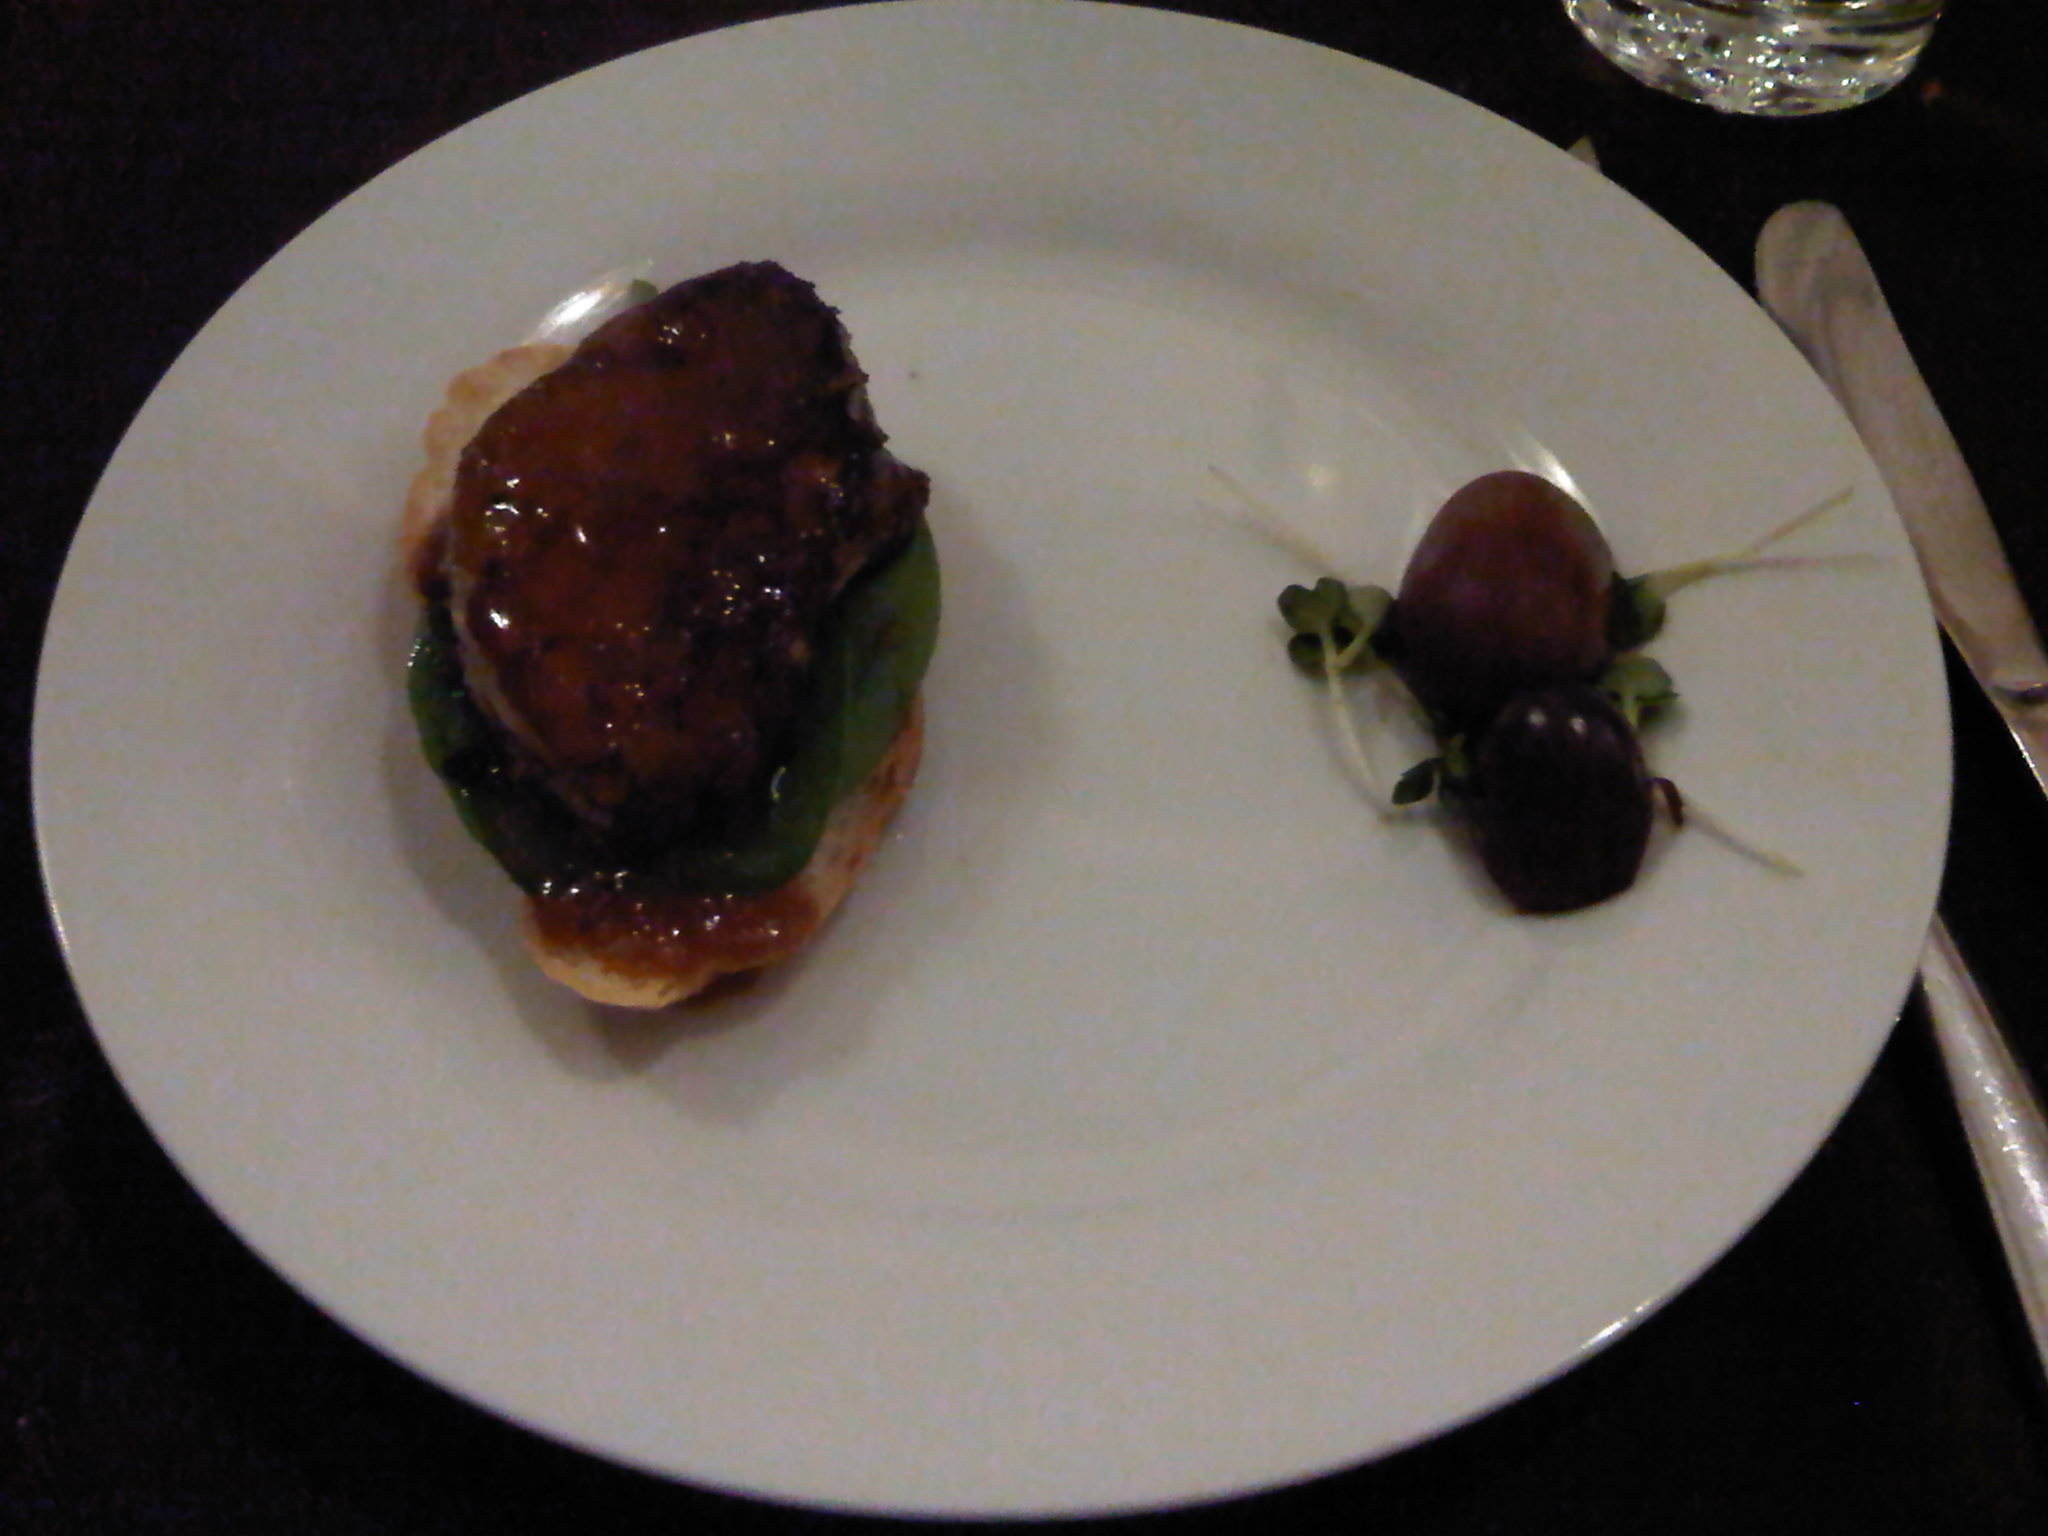 Seared Foie Gras (Goose Liver) on Baby Spinach & Toast in Meet Lobo's Signature Sauce